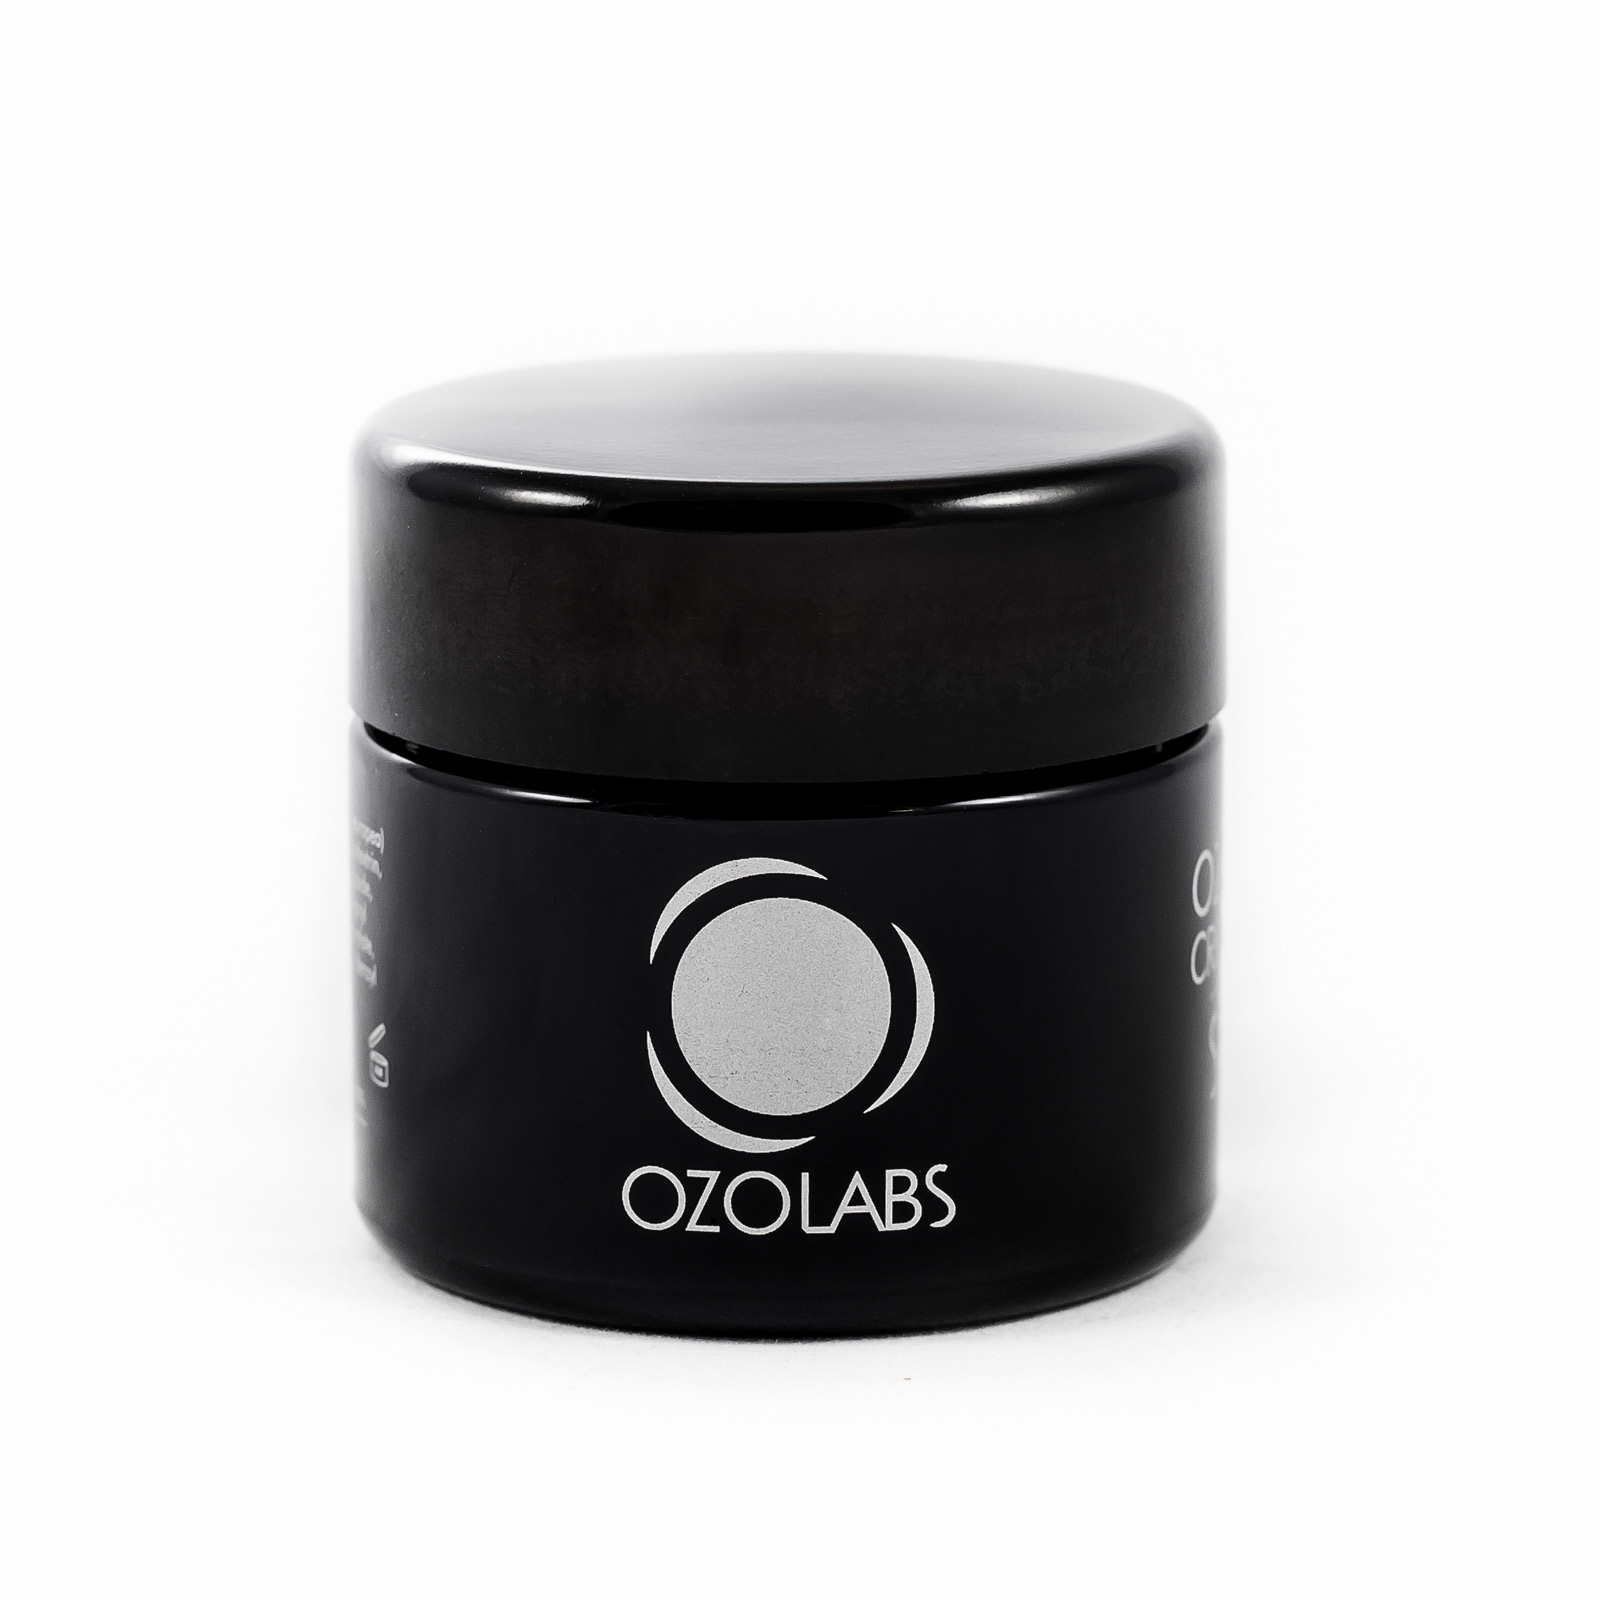 OZONE ORGANIC SKIN CARE CREAM 50cc/1.7 fl oz